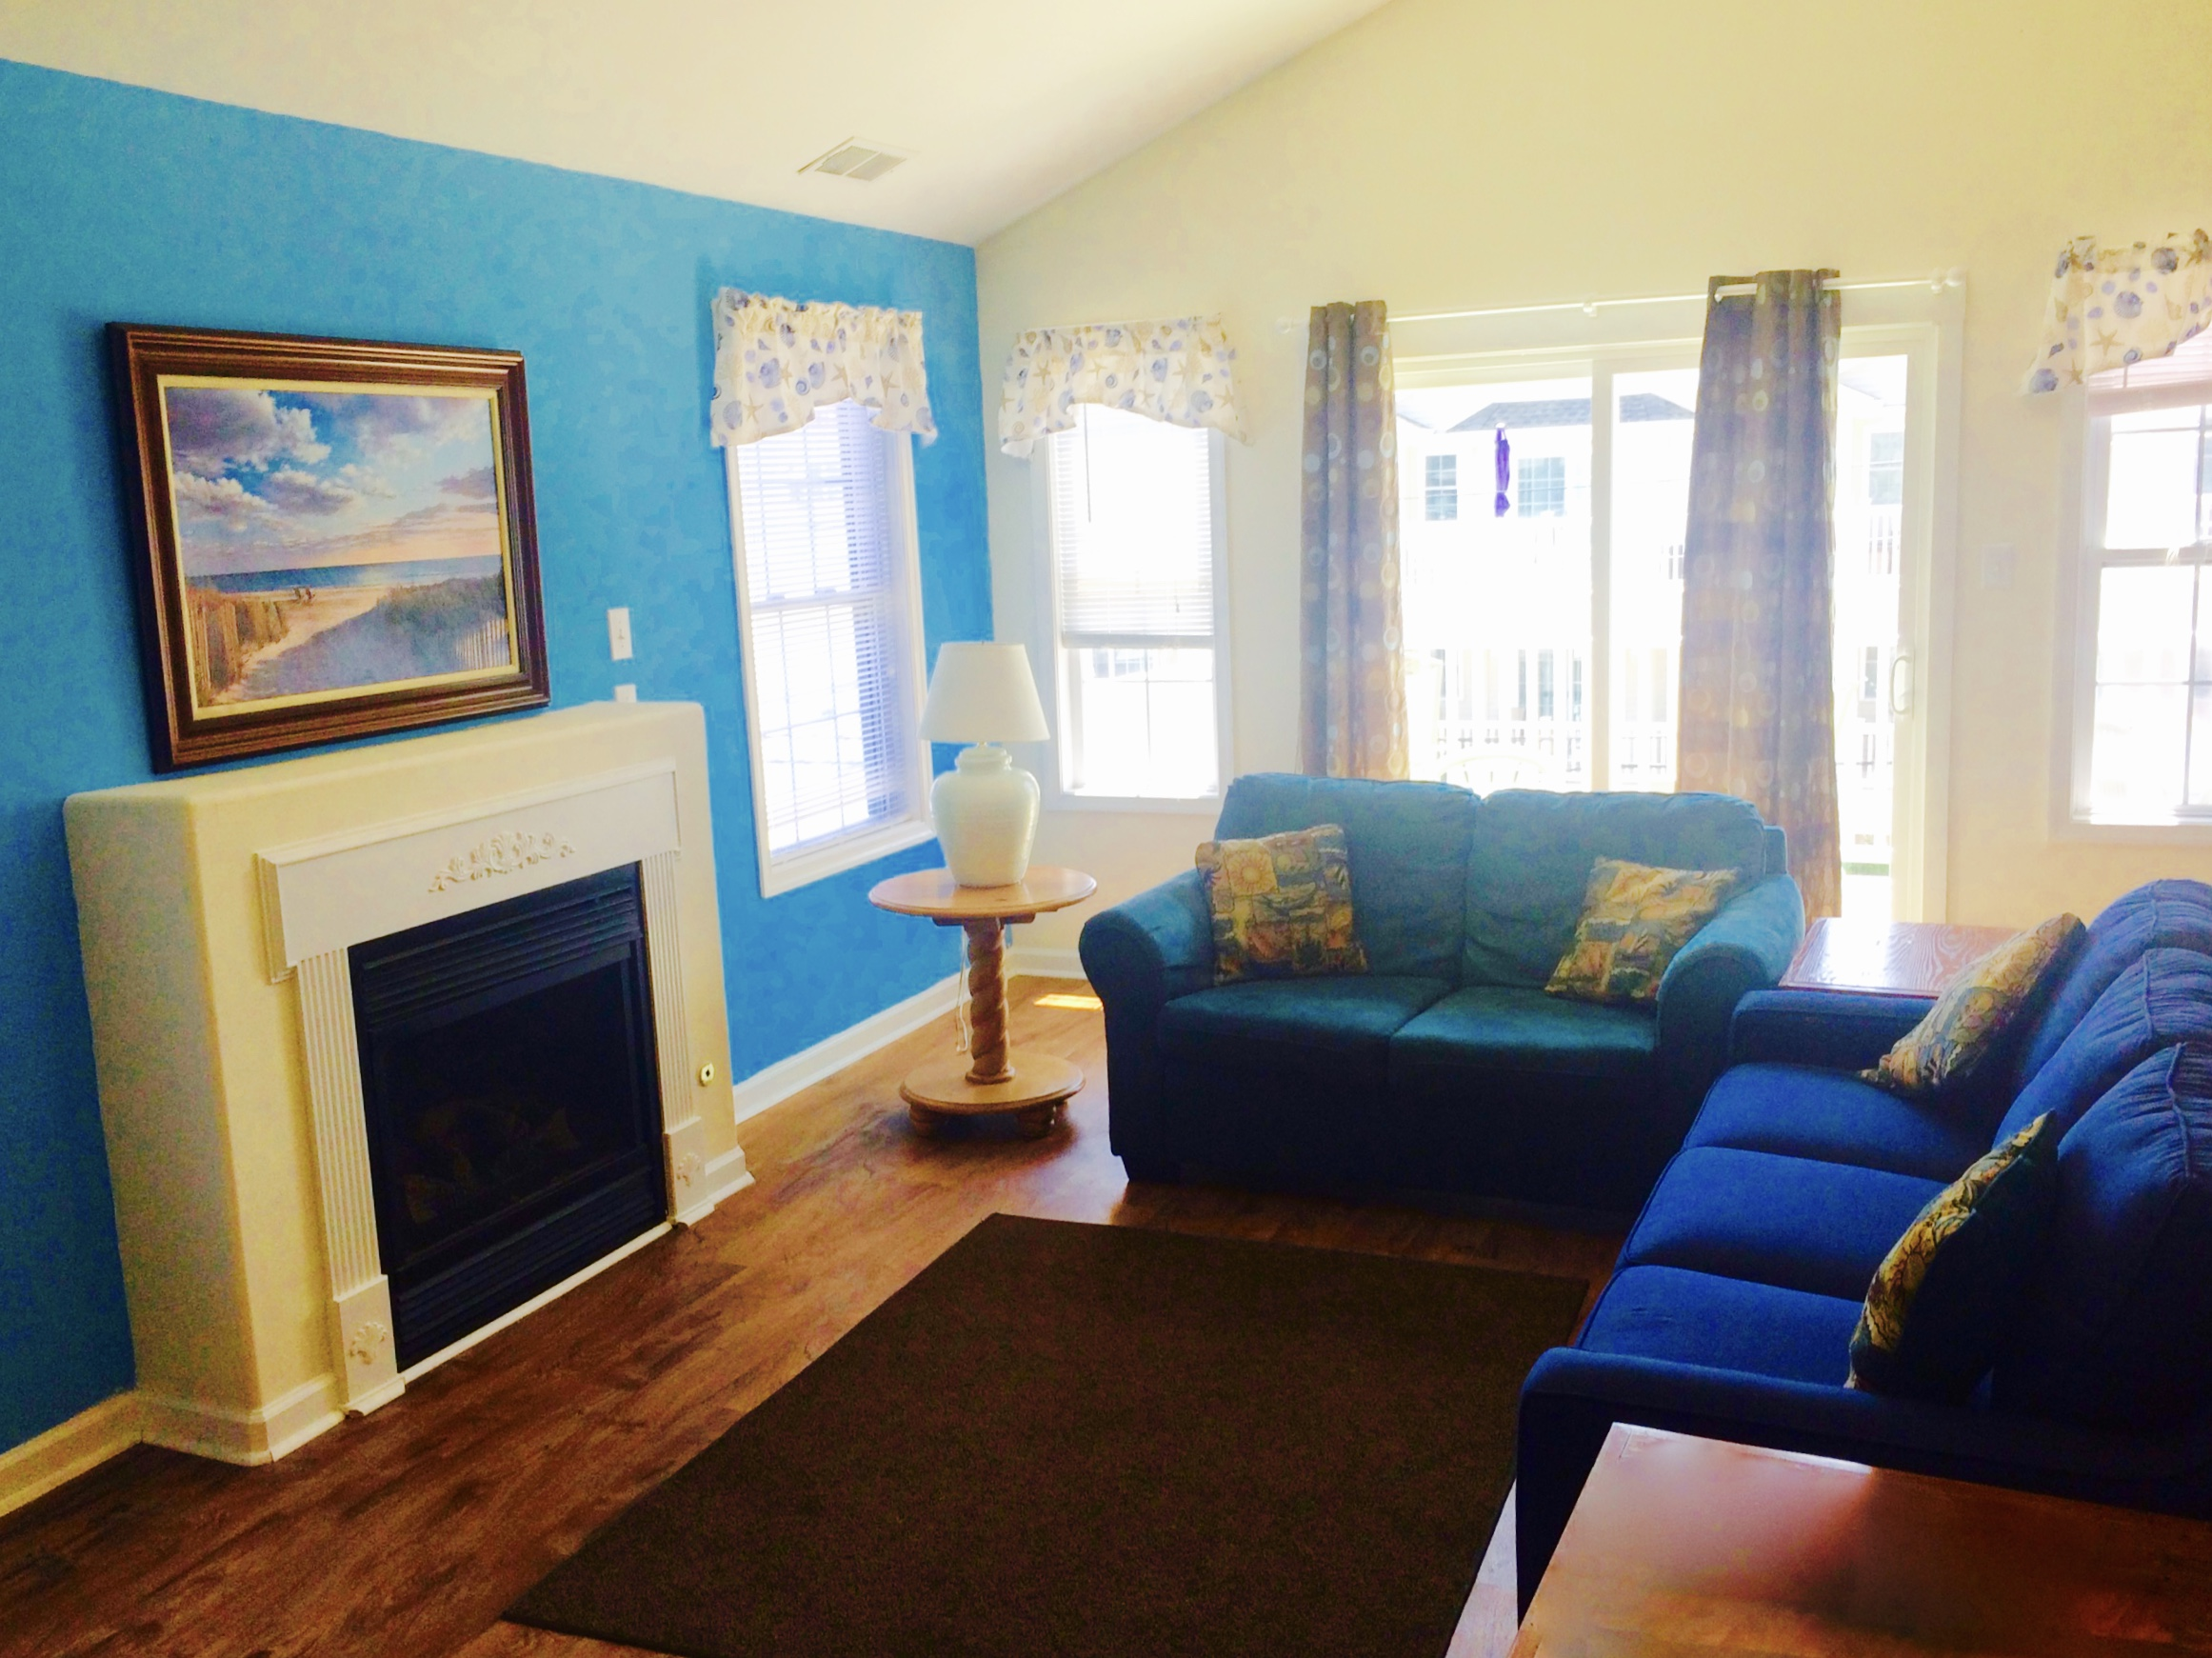 319 B East Pine Avenue //     4 Bedroom // 2 Bath  Beach Block Second Floor Condo  // Sleep 12